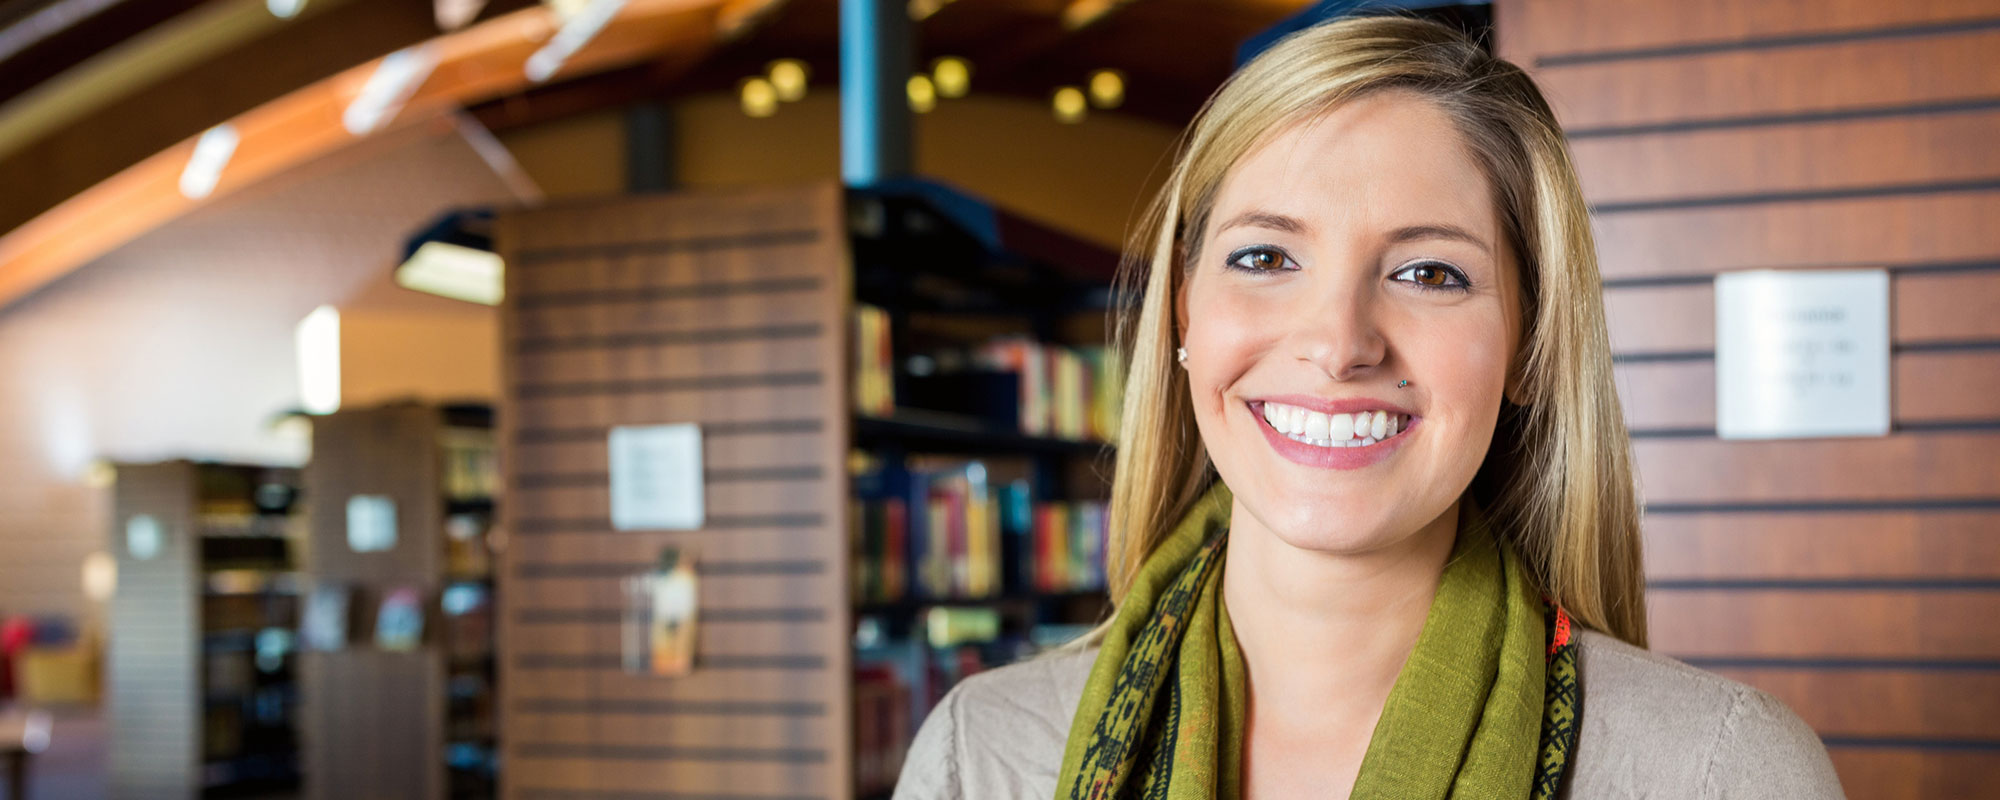 Woman standing in library smiling